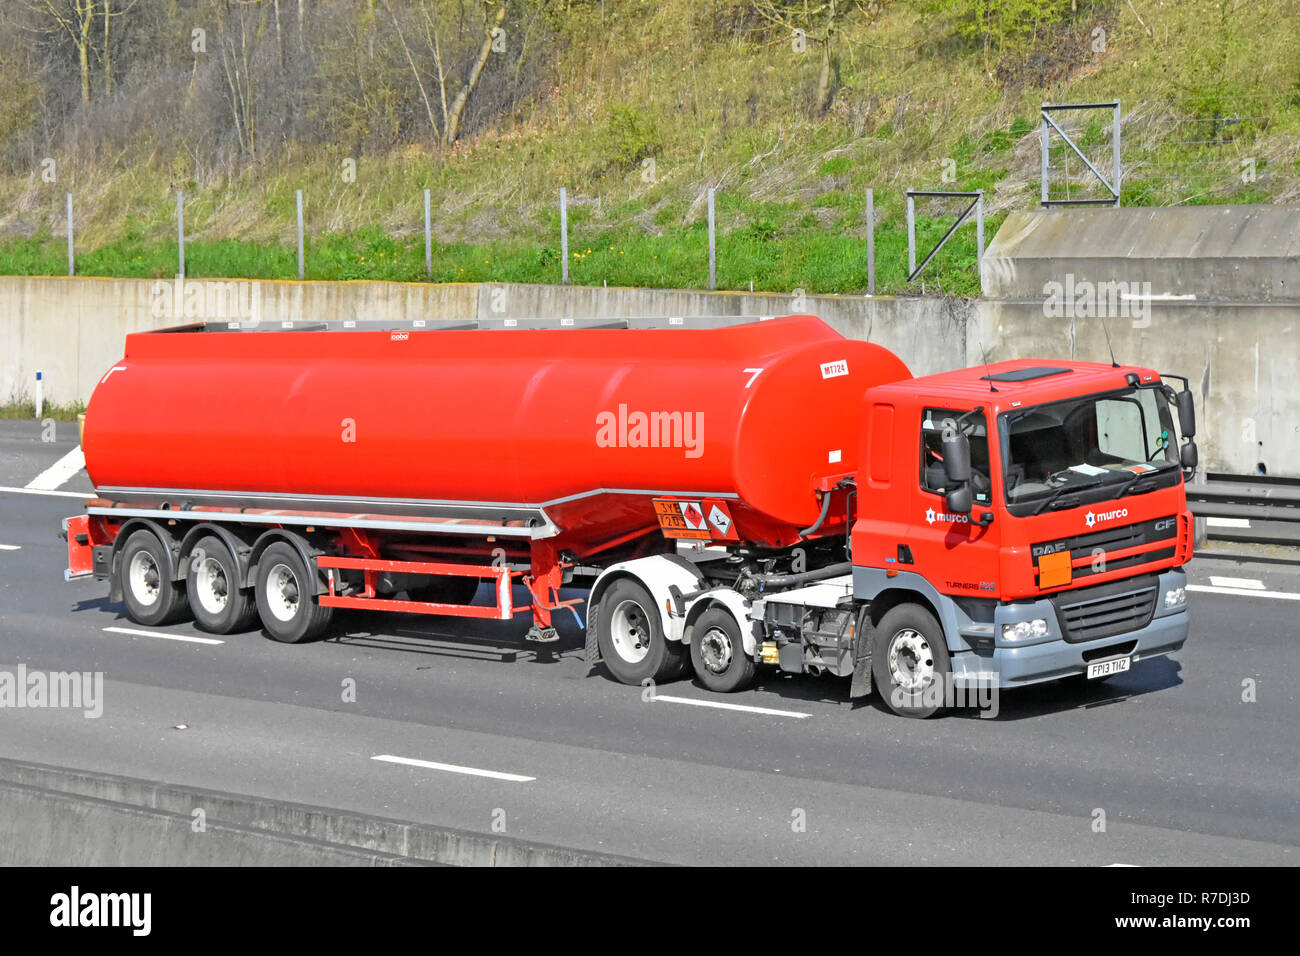 Red Murco transport logistics hgv truck & articulated supply chain transportation fuel petrol diesel tanker delivery lorry motorway Essex England UK - Stock Image